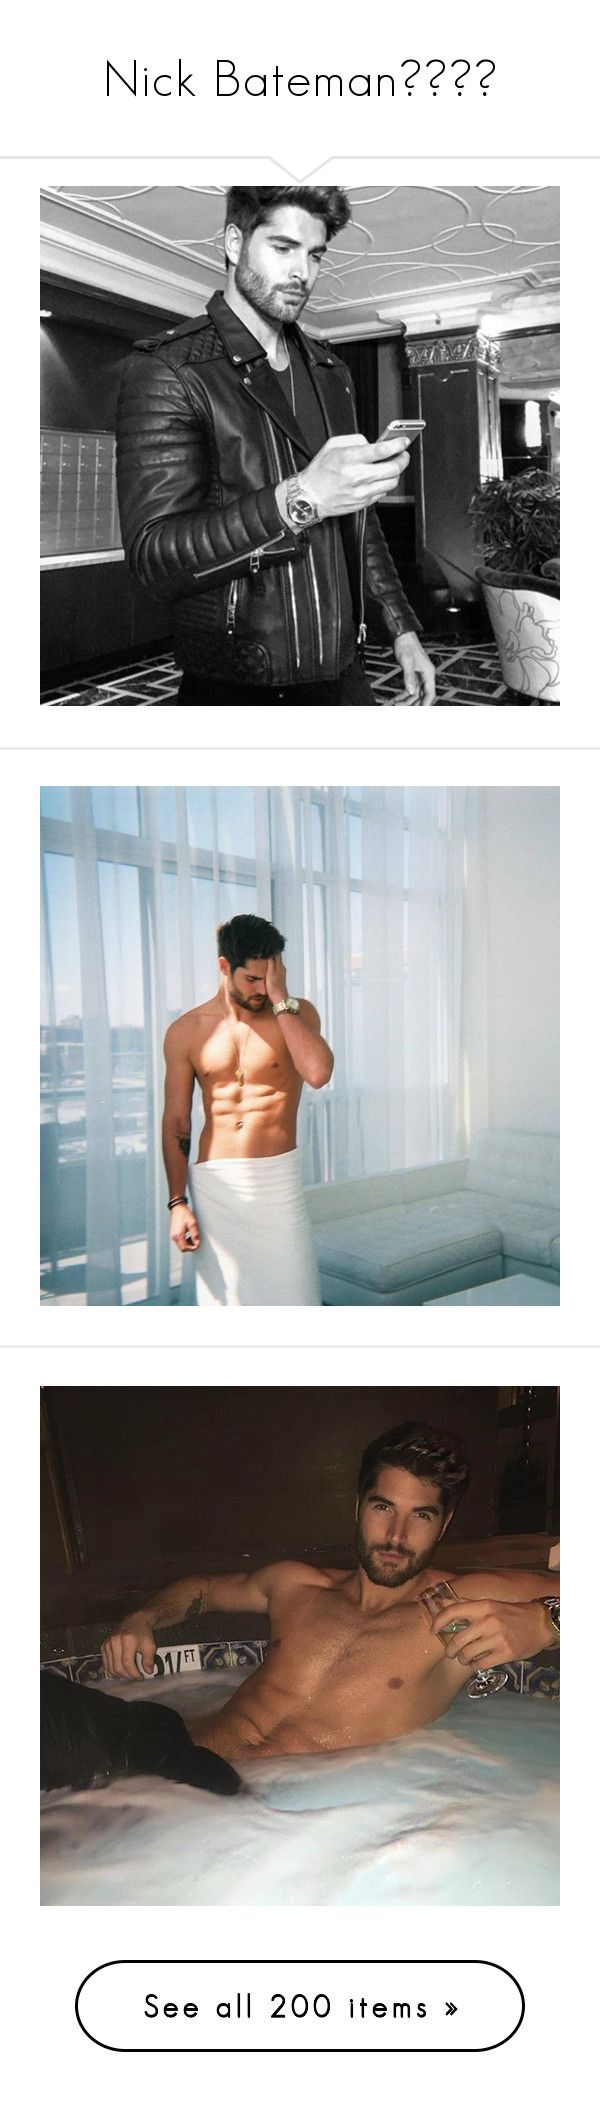 """""""Nick Bateman"""" by austinsmango-96 ❤ liked on Polyvore featuring nick bateman, photos, people, jewelry, him, boys, home, home decor and earrings"""